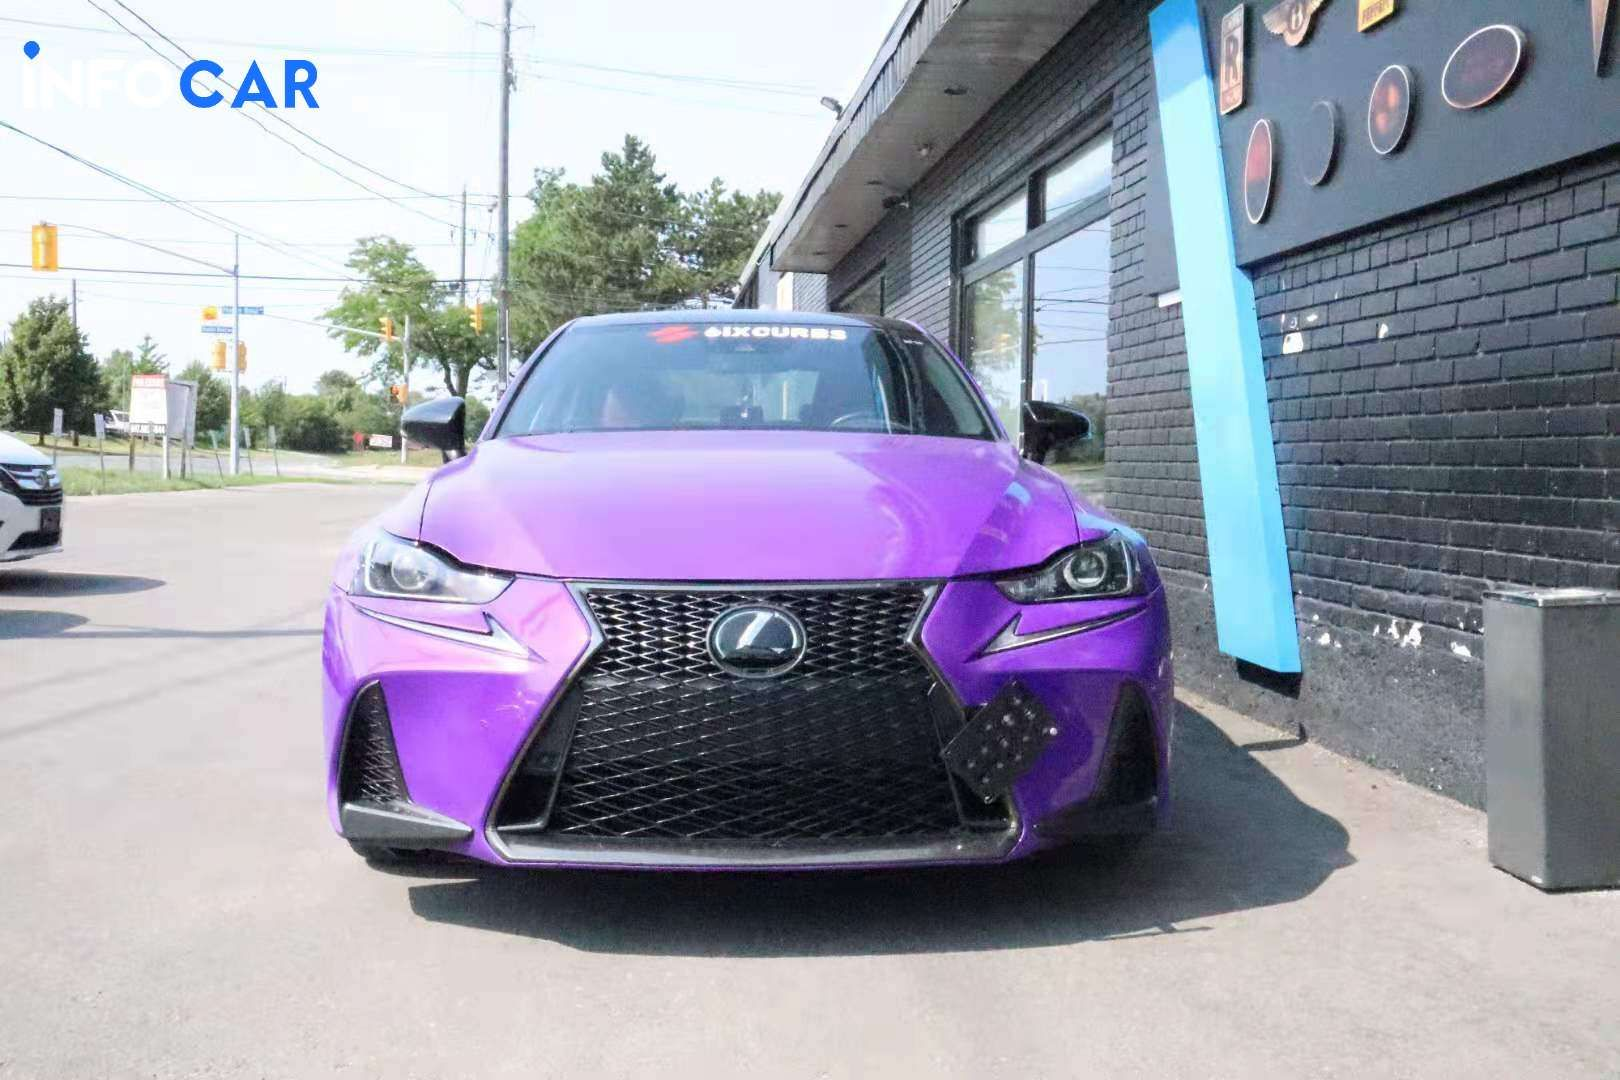 2018 Lexus IS 350 - INFOCAR - Toronto's Most Comprehensive New and Used Auto Trading Platform